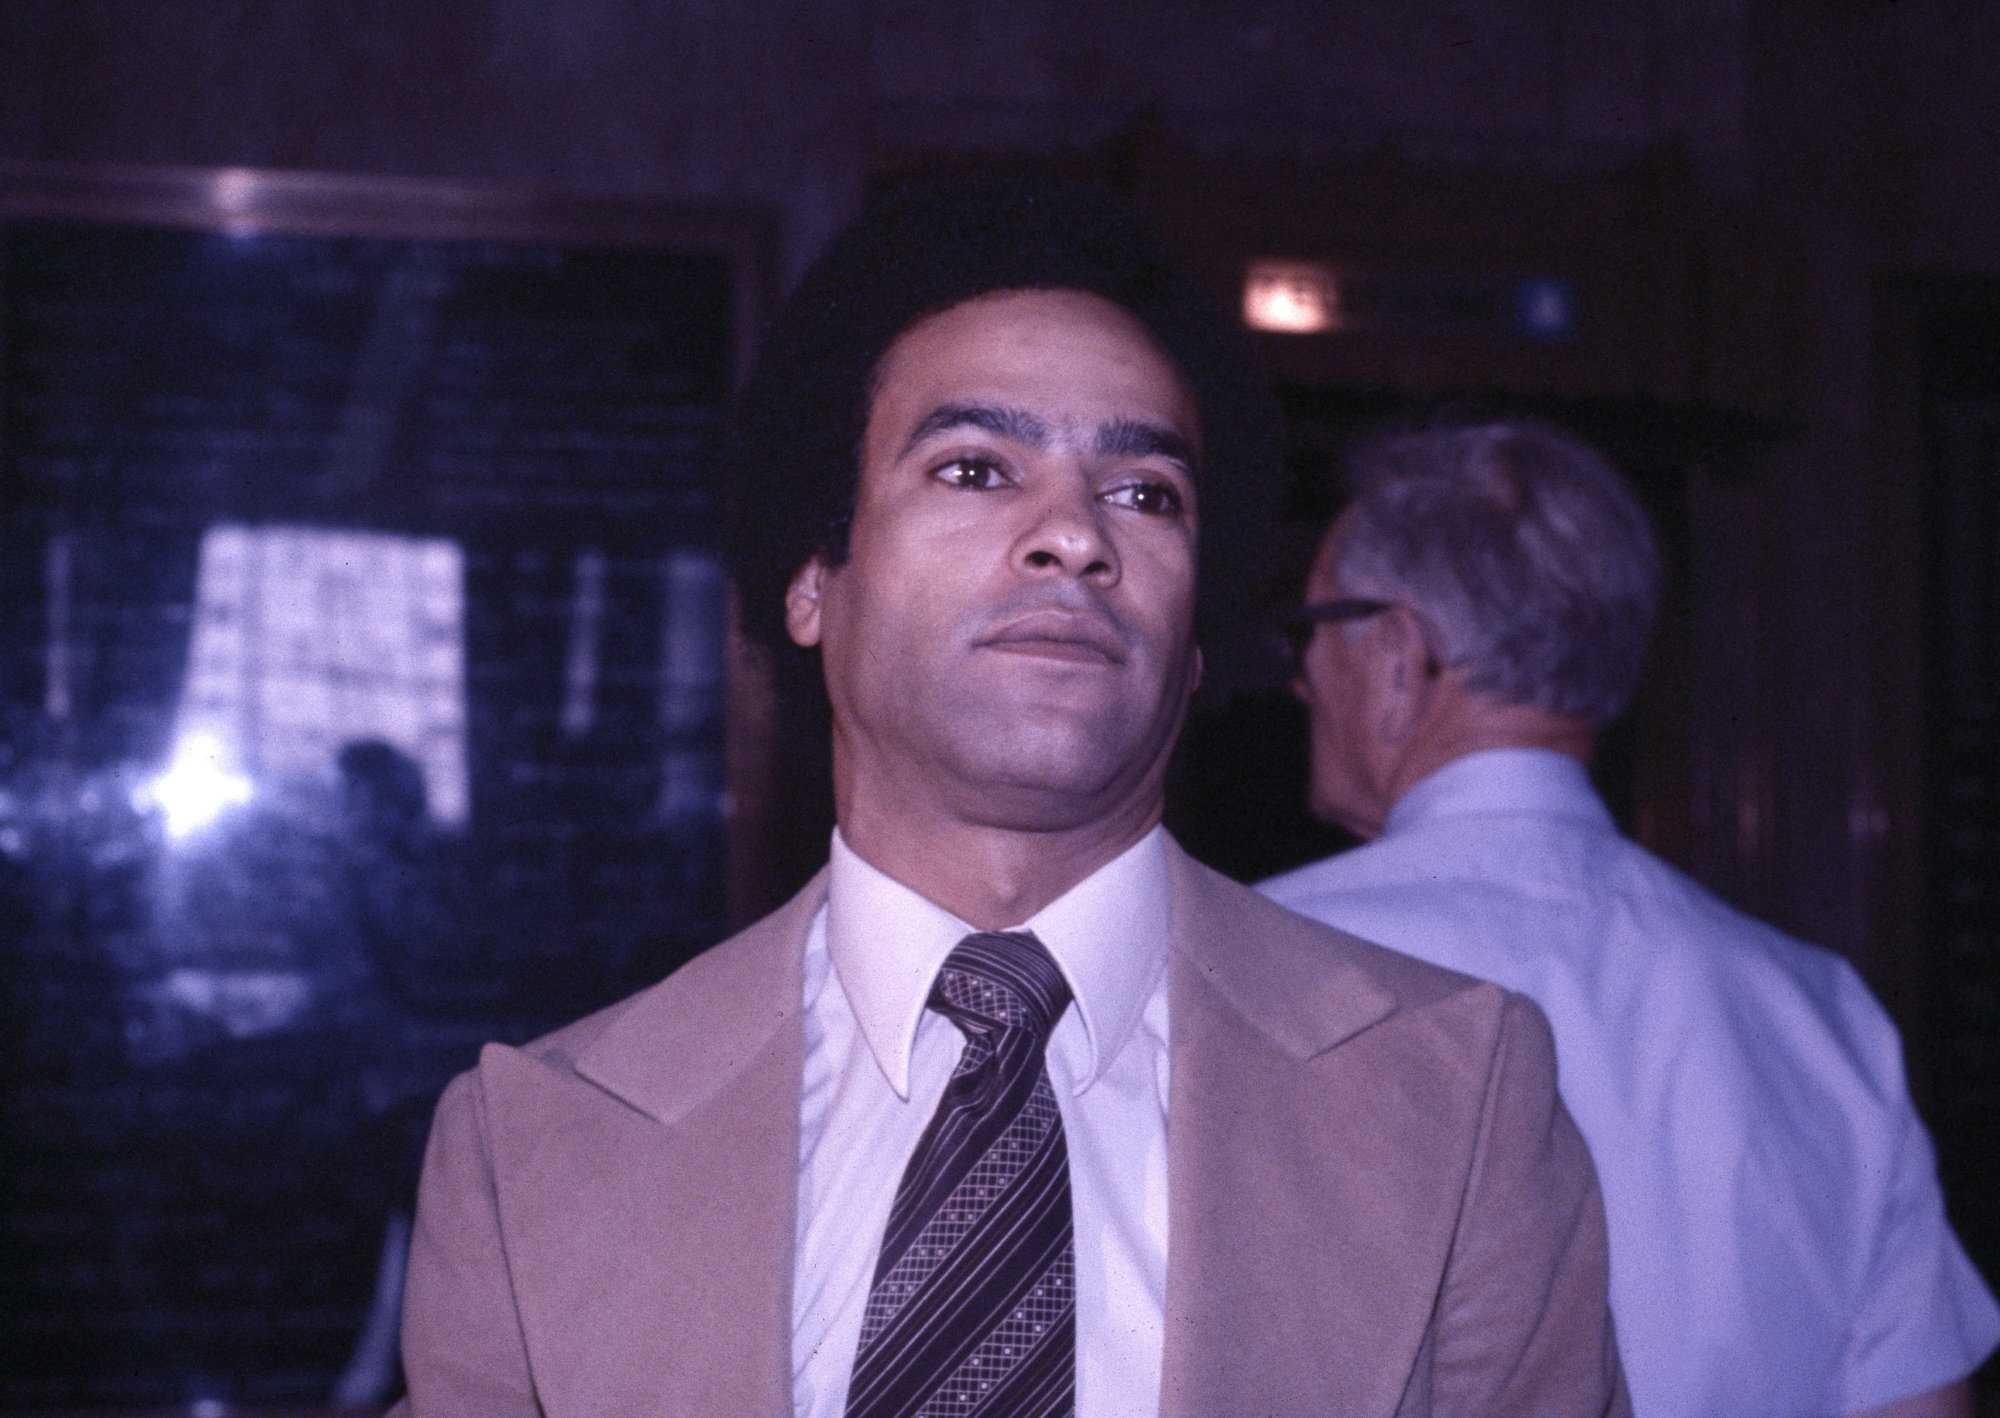 Former Black Panther leader Huey Newton is pictured at the courthouse in Oakland, Calif., March 23, 1979. (AP Photo/Paul Sakuma)